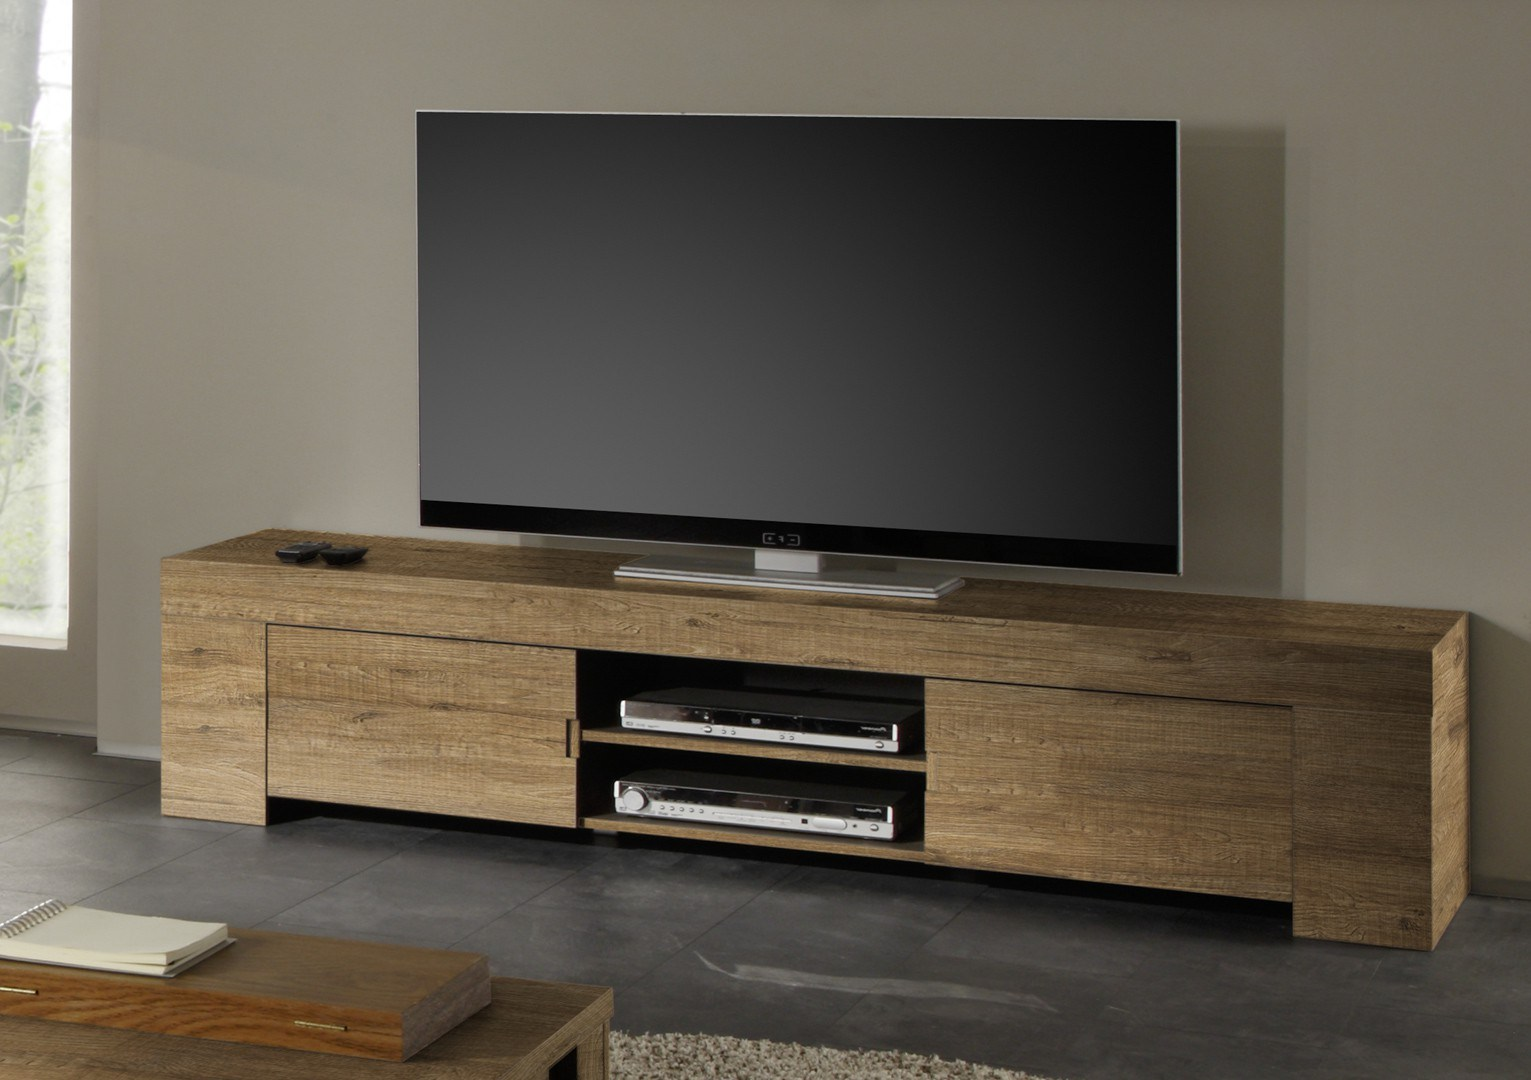 Banc tv contemporain 8 id es de d coration int rieure french decor - Banc contemporain ...